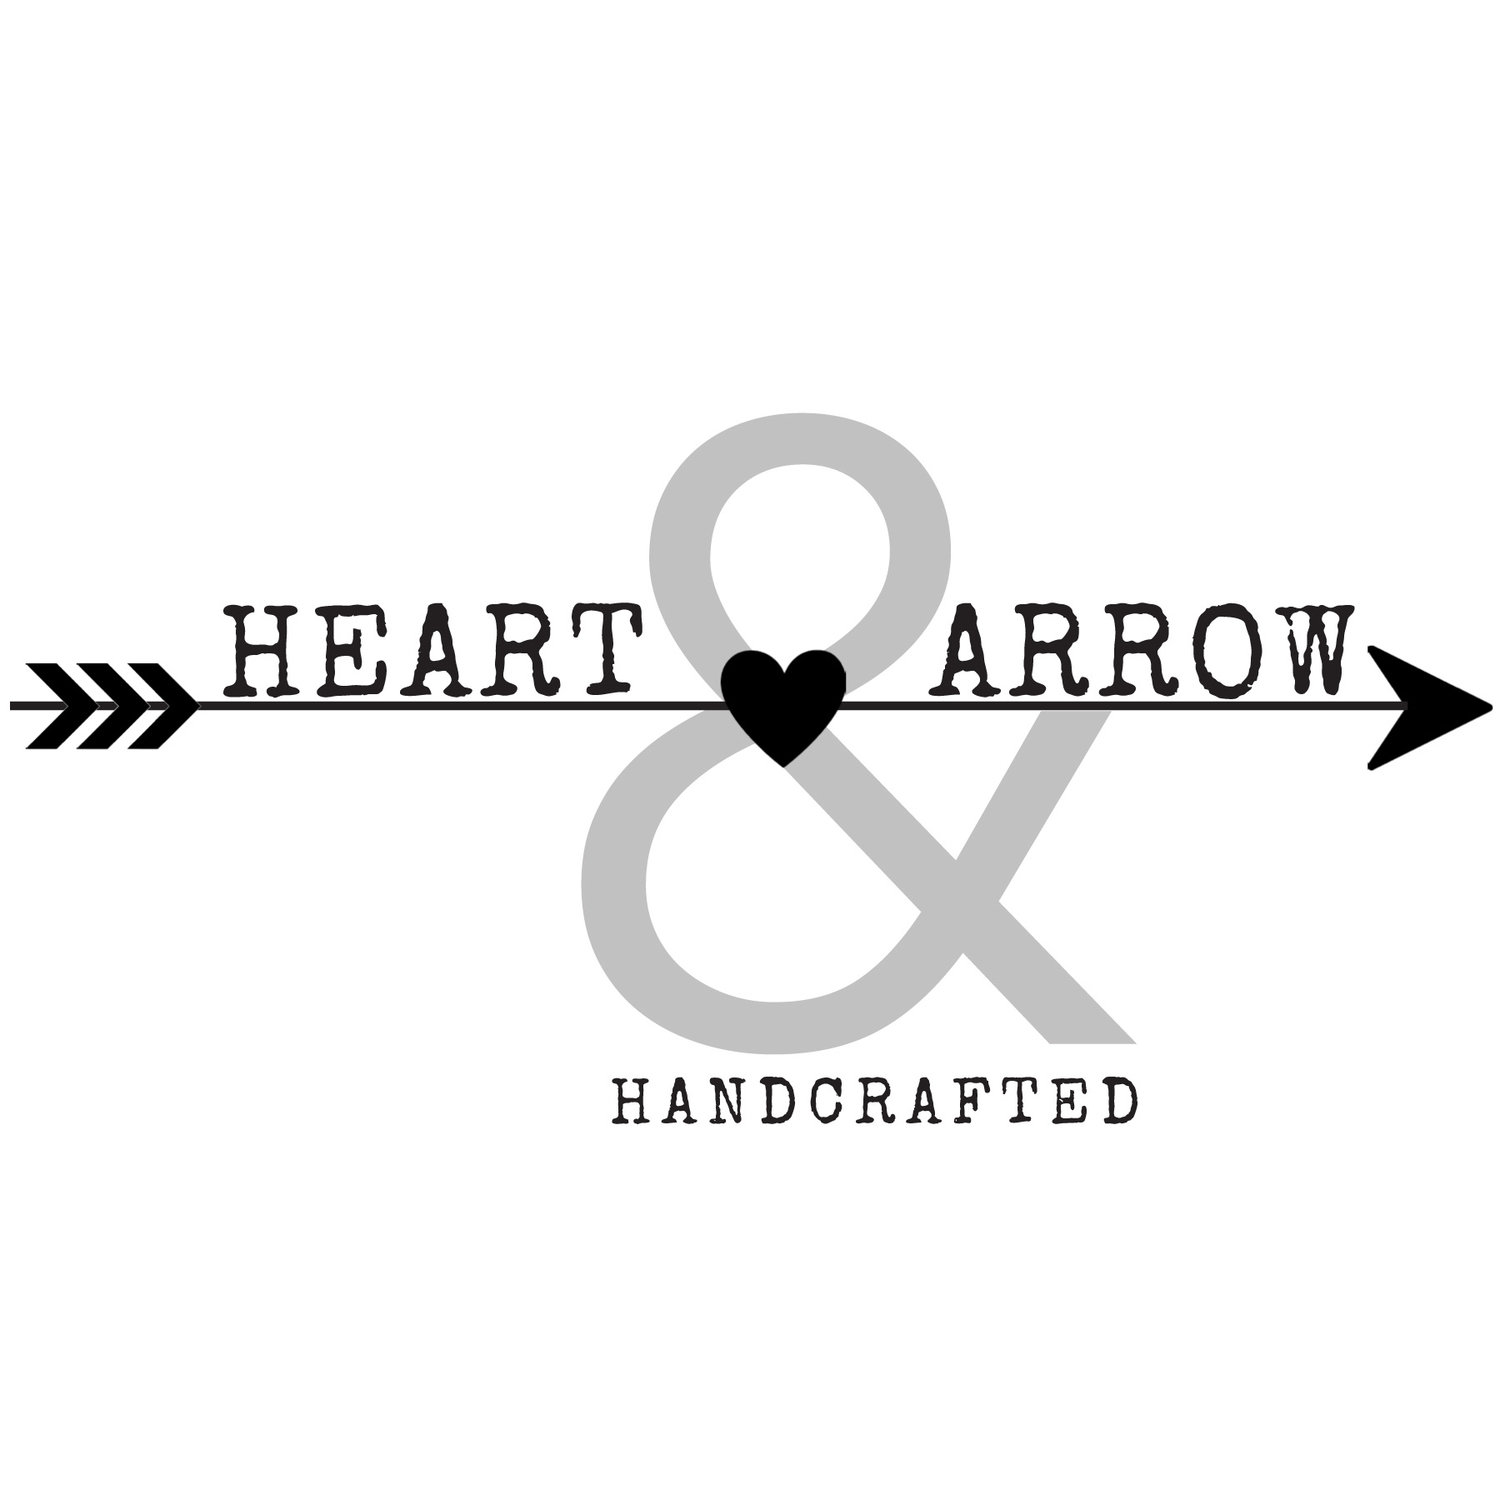 heart & arrow handcrafted